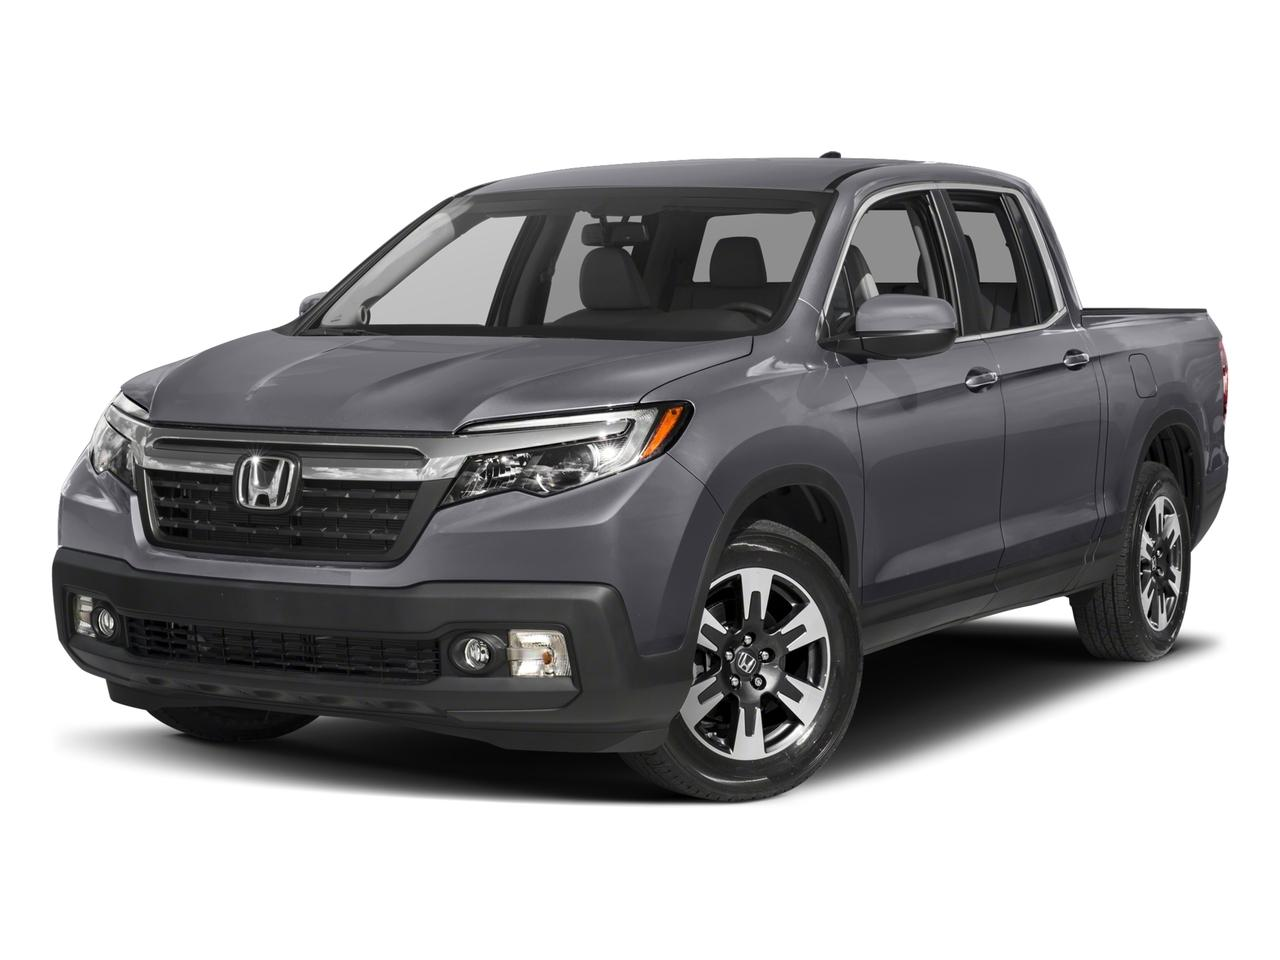 2017 Honda Ridgeline Vehicle Photo in San Antonio, TX 78238